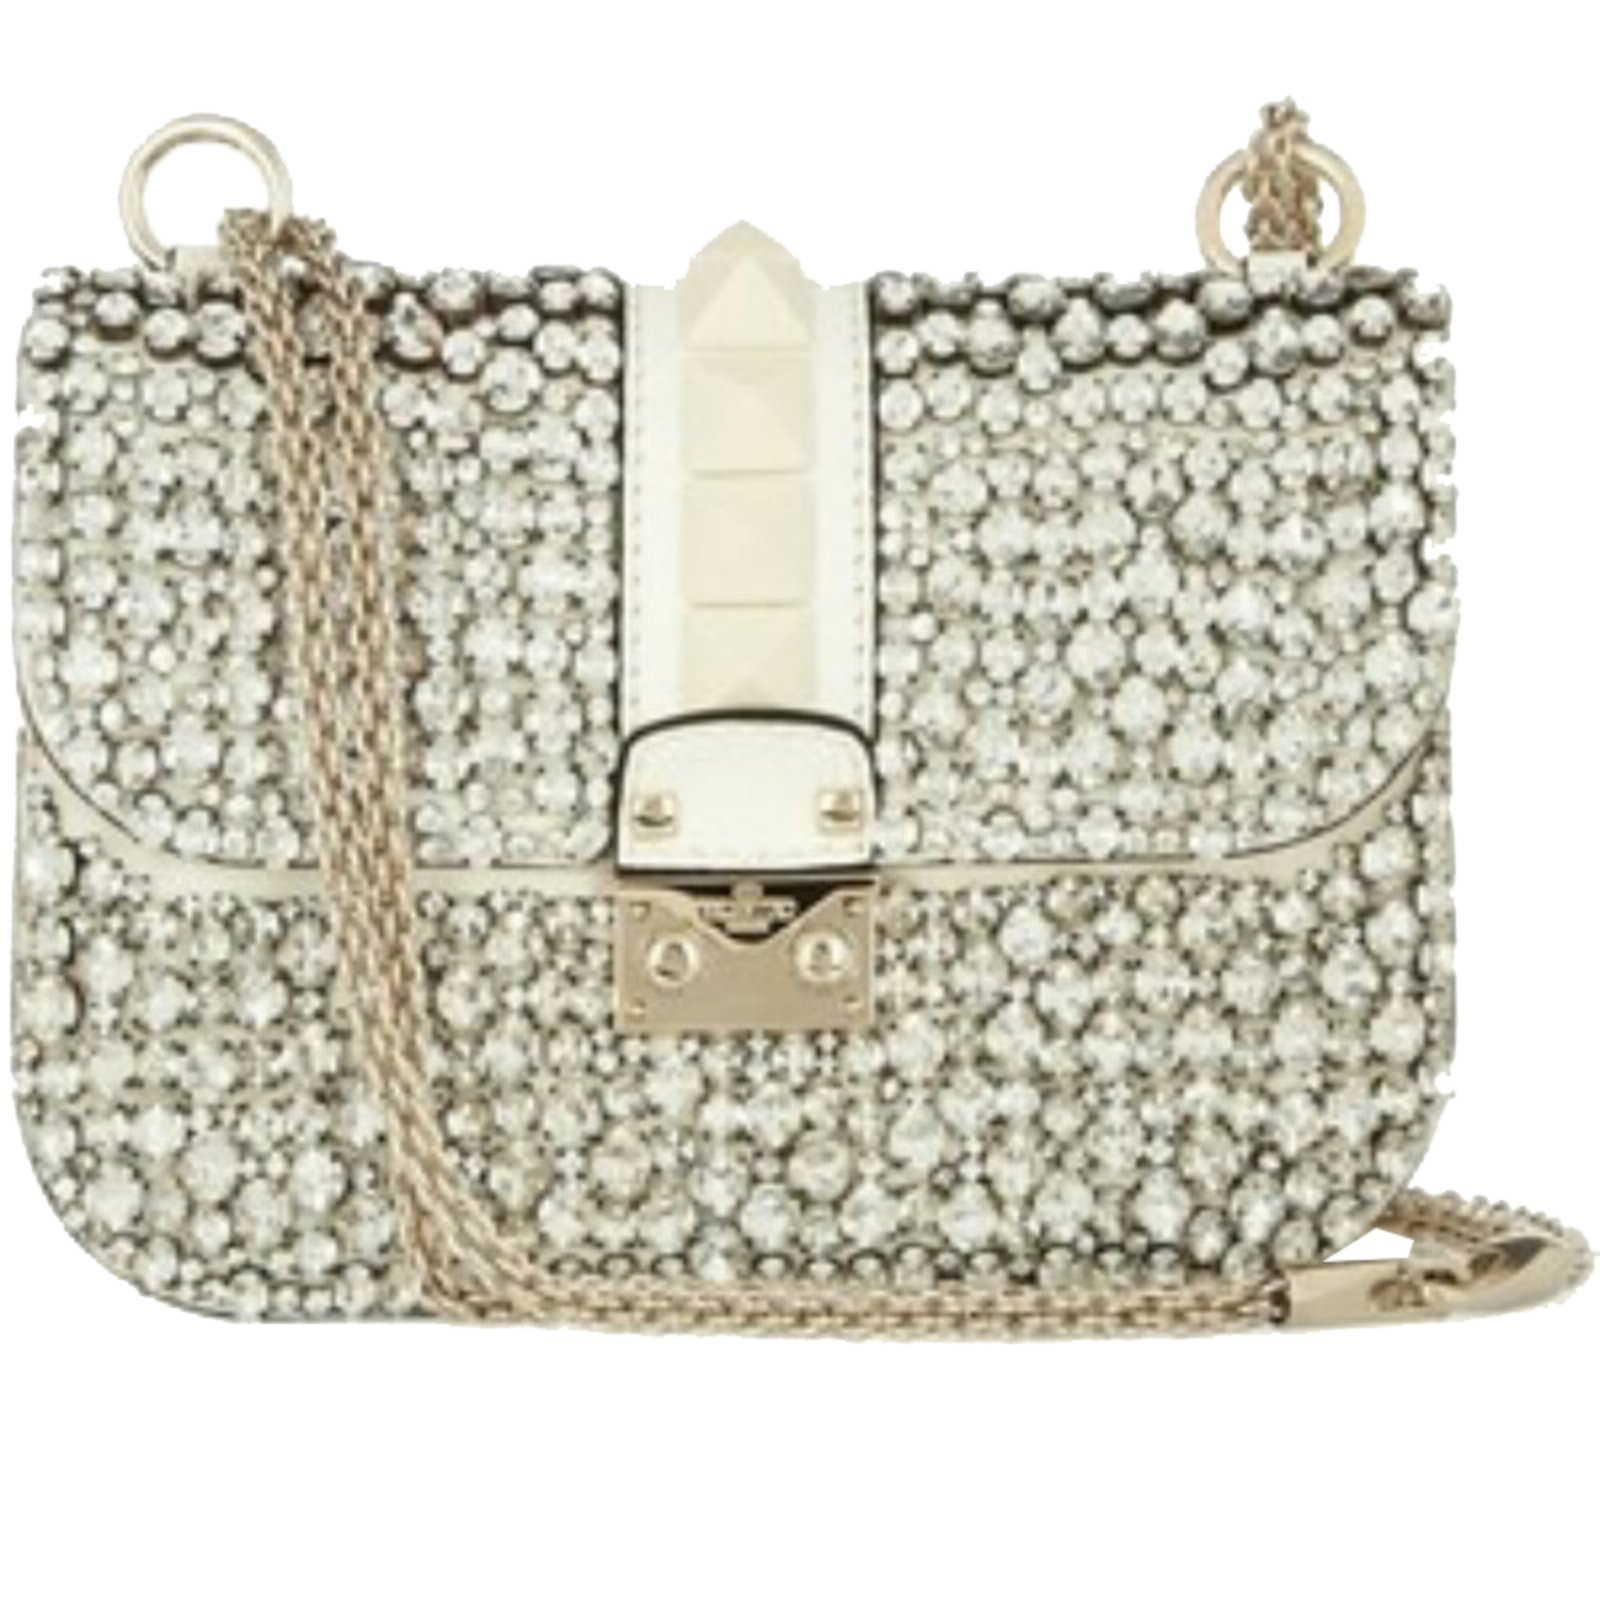 Valentino Swarovski Bag Handbags Leather White Ref 37527